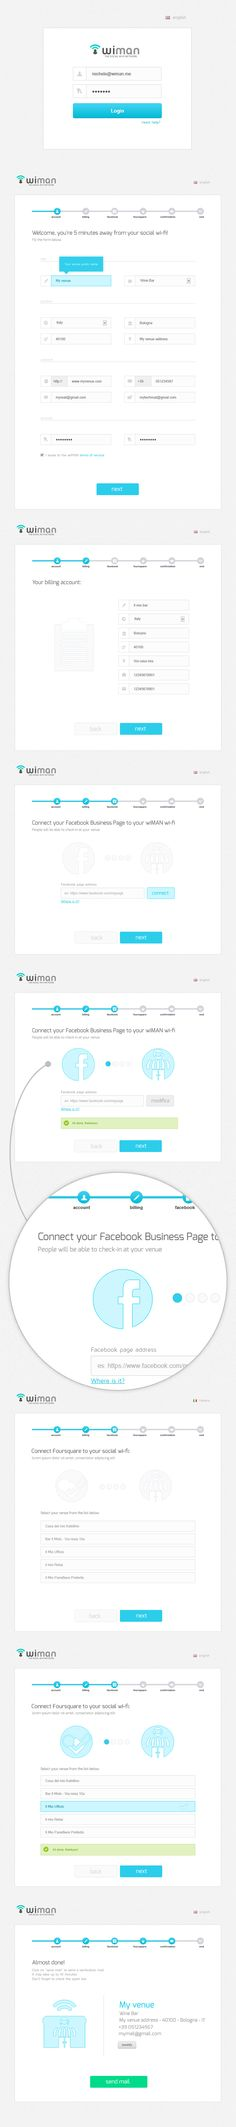 Wiman registration wizard in six easy steps by Alessio De Feudis, via Behance Design Ios, Form Design, Dashboard Design, Desktop Design, Design Thinking, Intranet Design, Creation Site, Web Forms, Ui Patterns